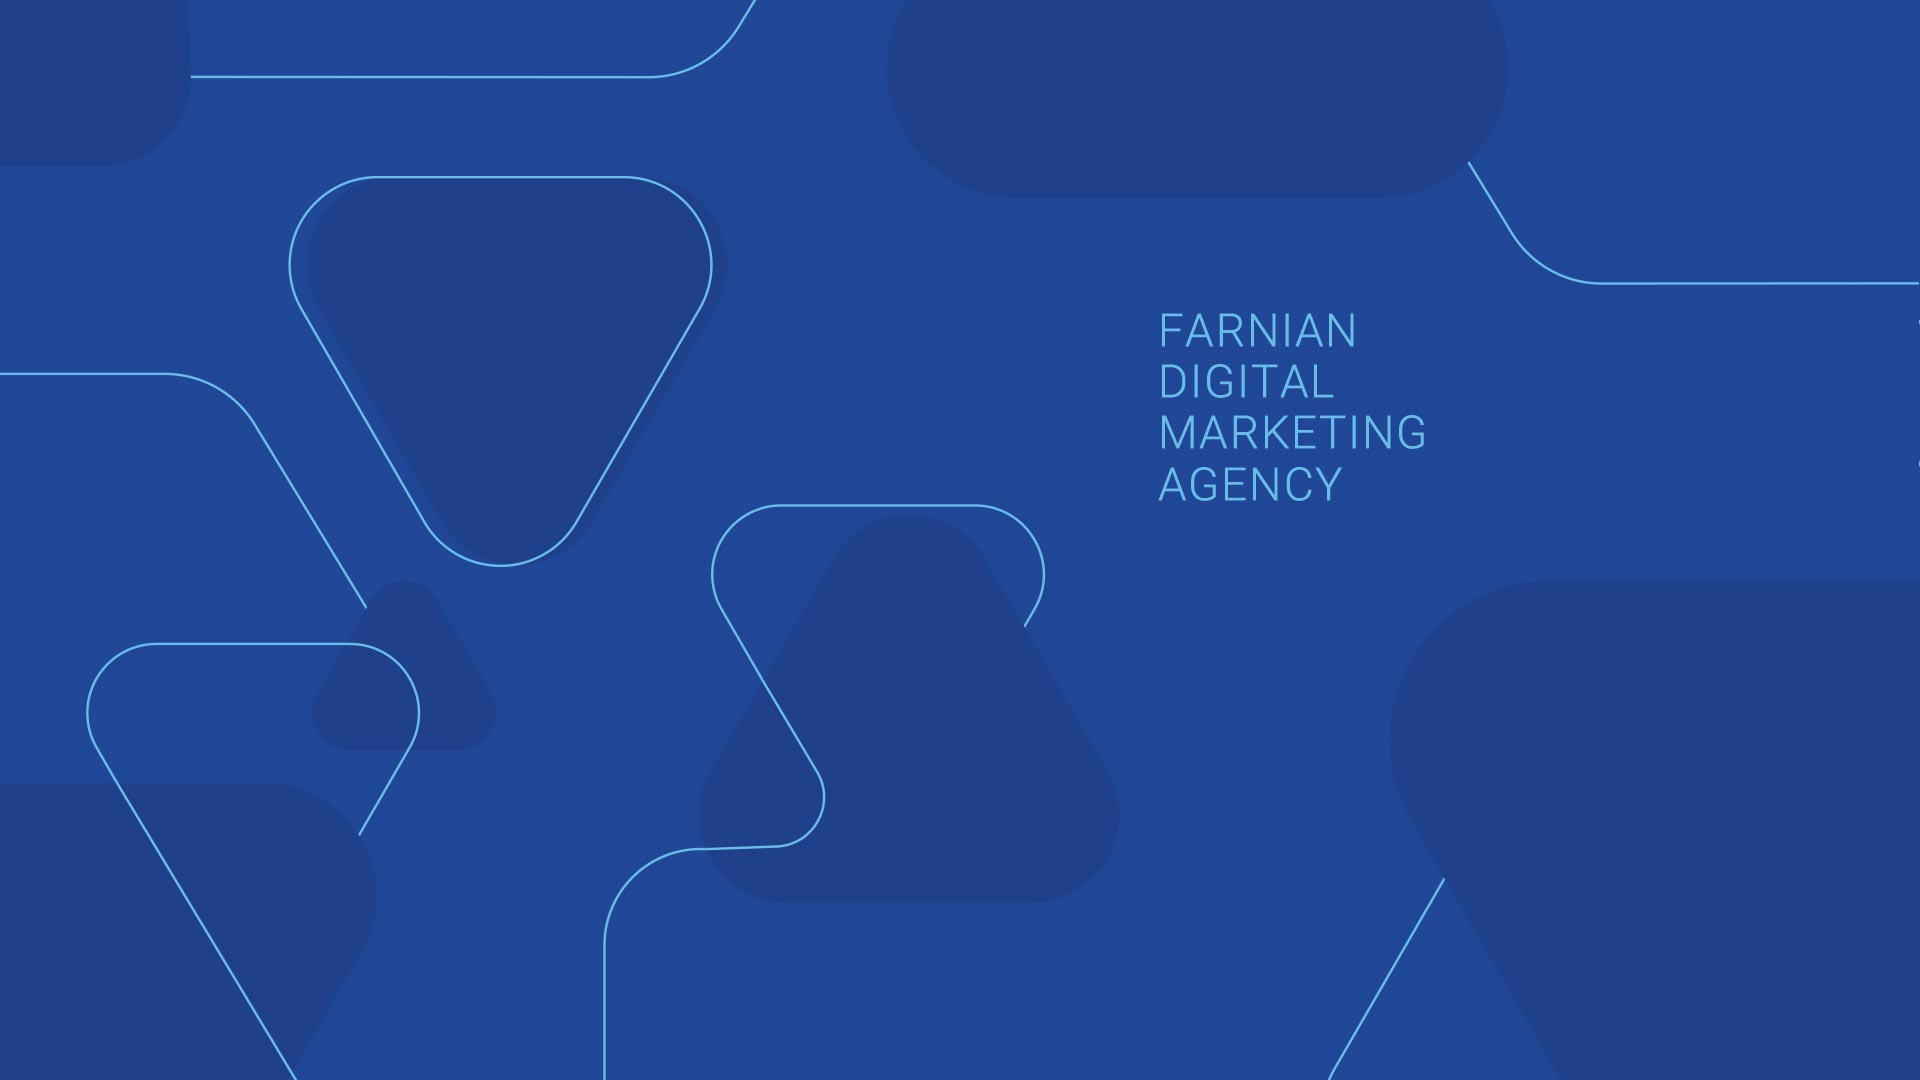 Farnian-marketing-identity-design